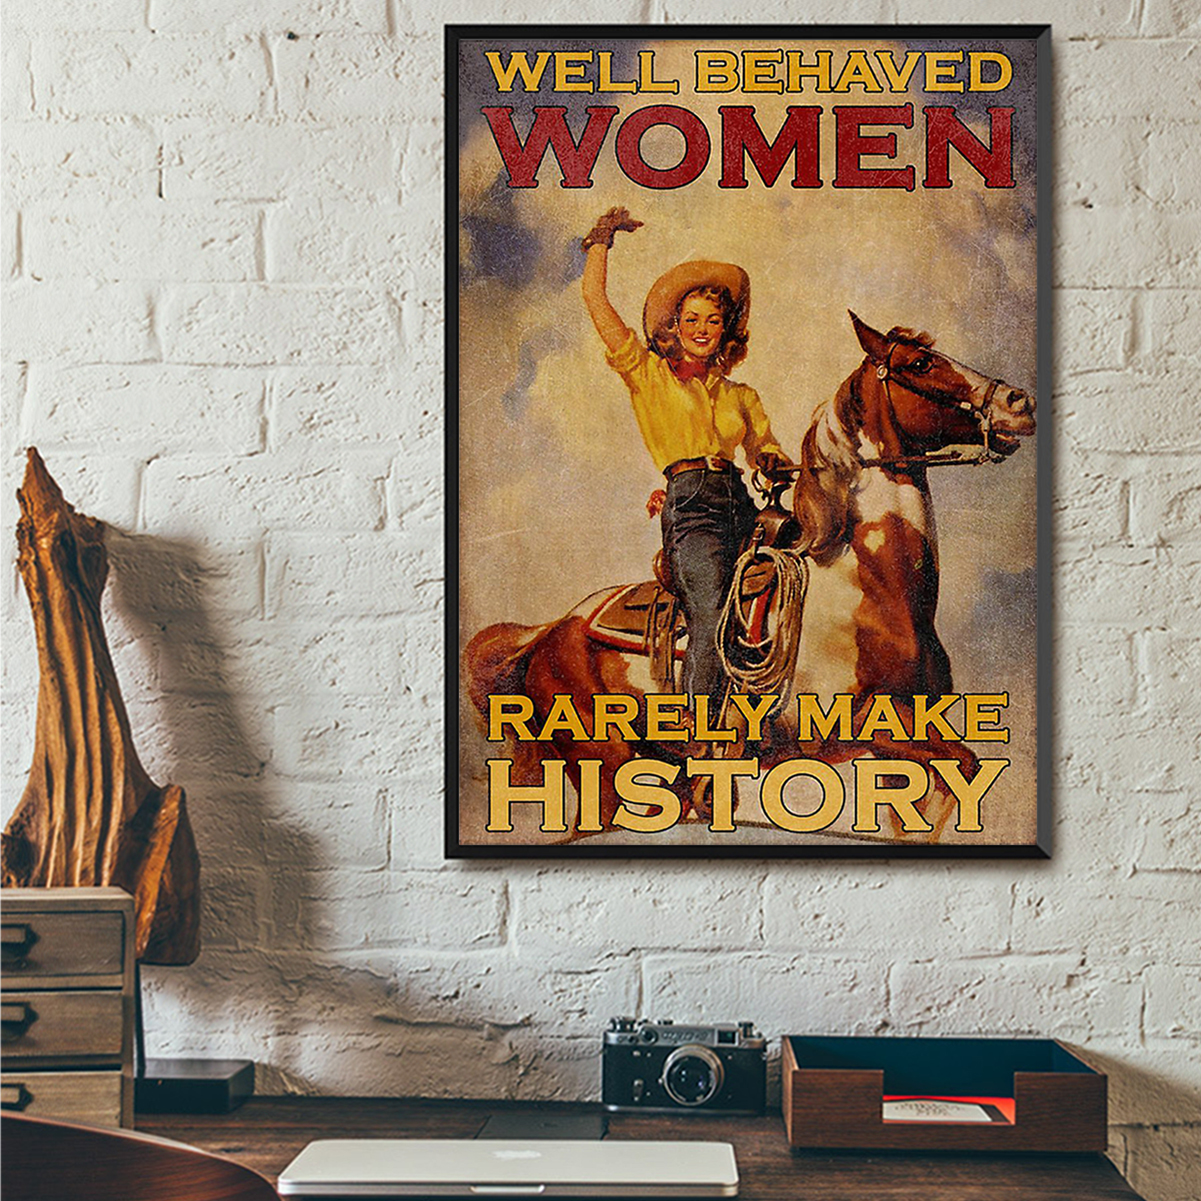 Horse women well behave women rarely make history poster A1